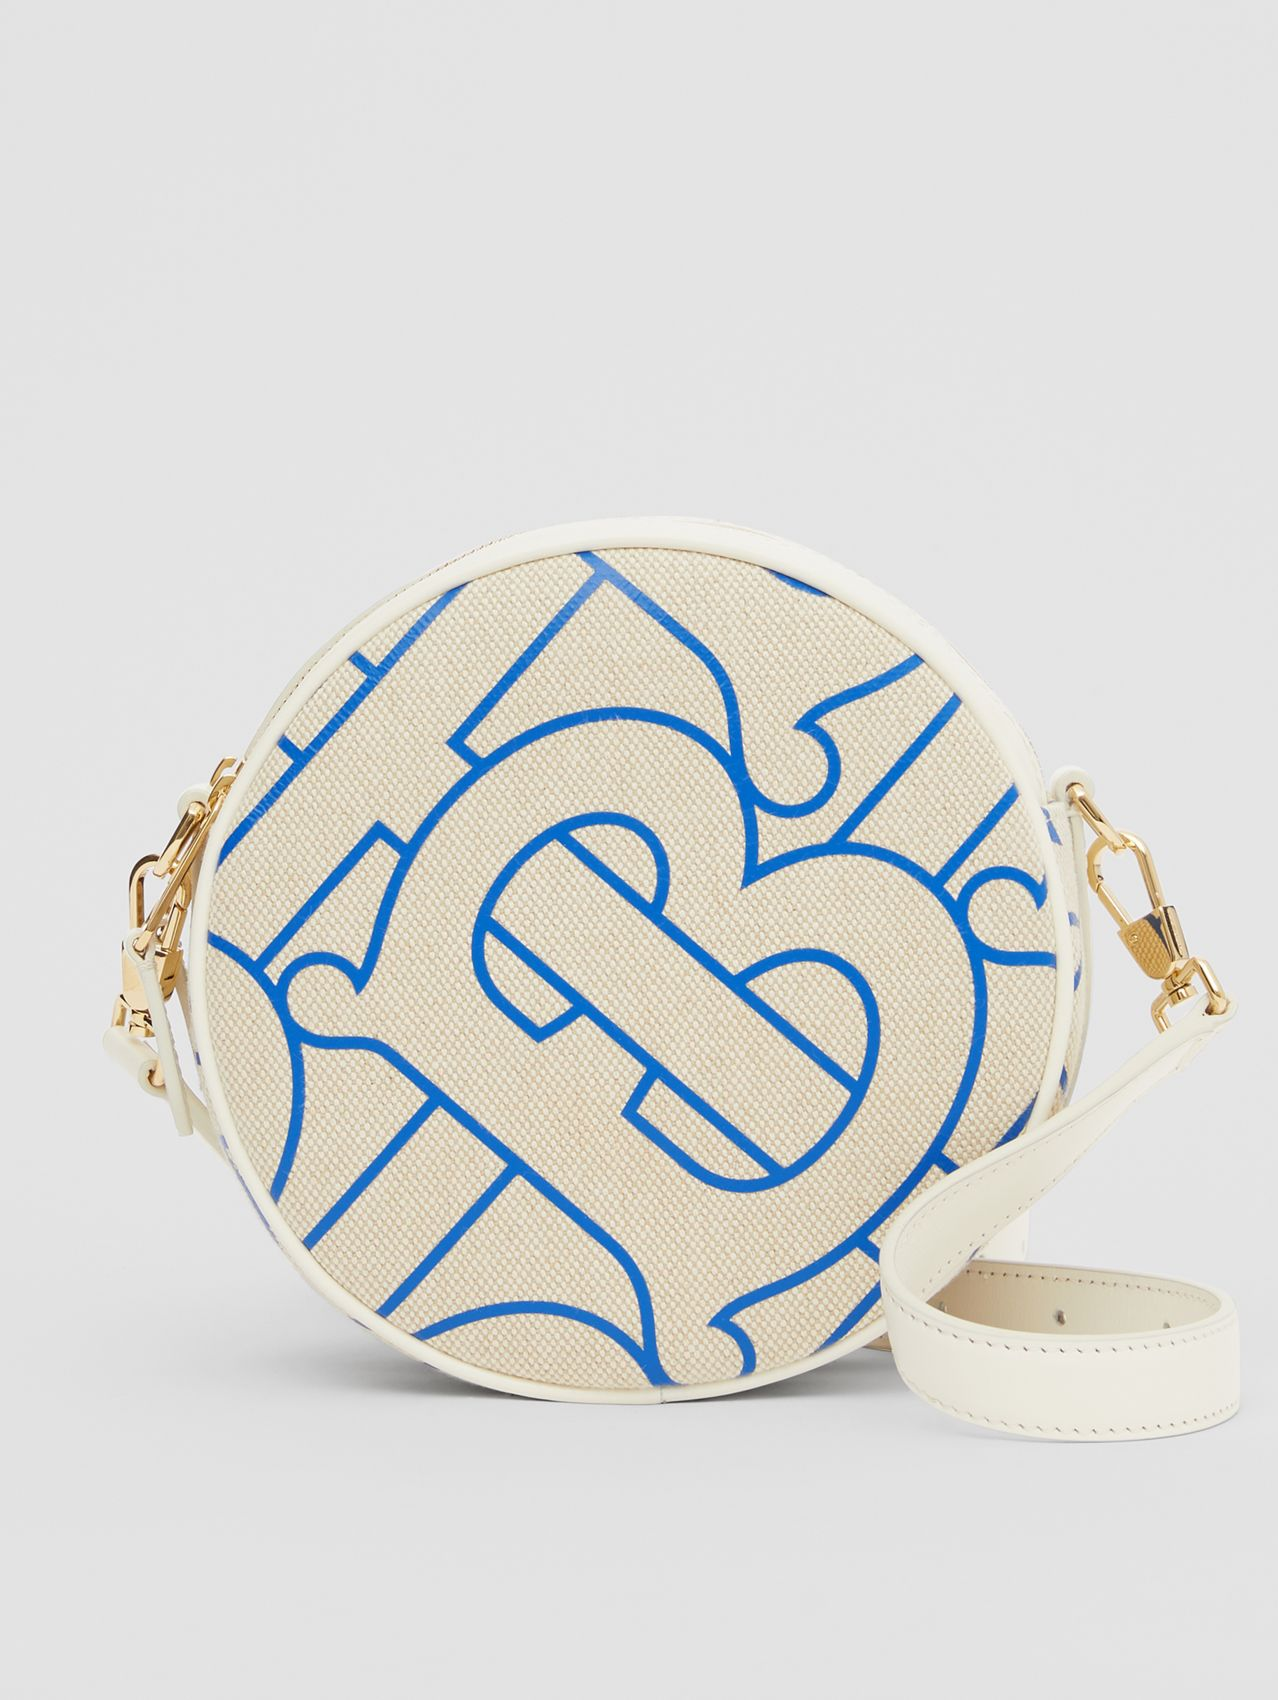 Monogram Motif Canvas and Leather Louise Bag (Natural/blue)